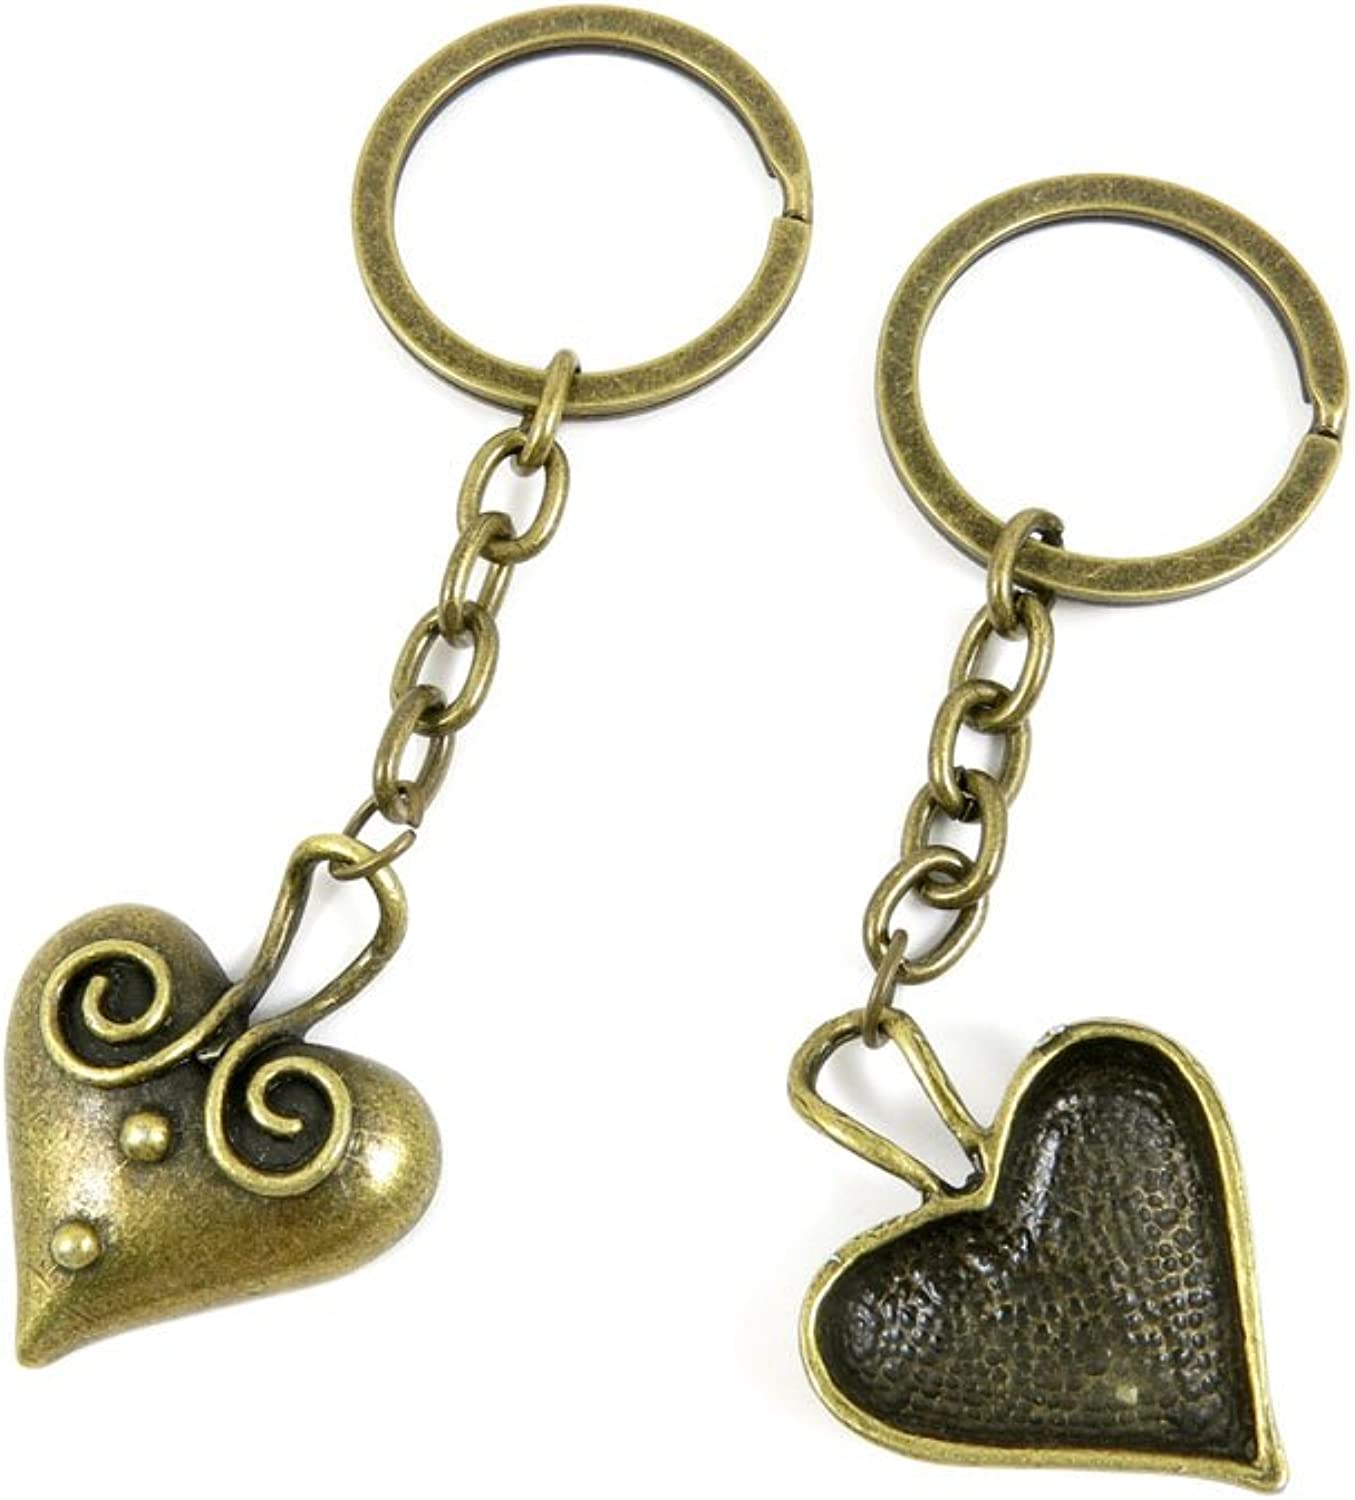 100 PCS Keyrings Keychains Key Ring Chains Tags Jewelry Findings Clasps Buckles Supplies V7ZB3 Heart